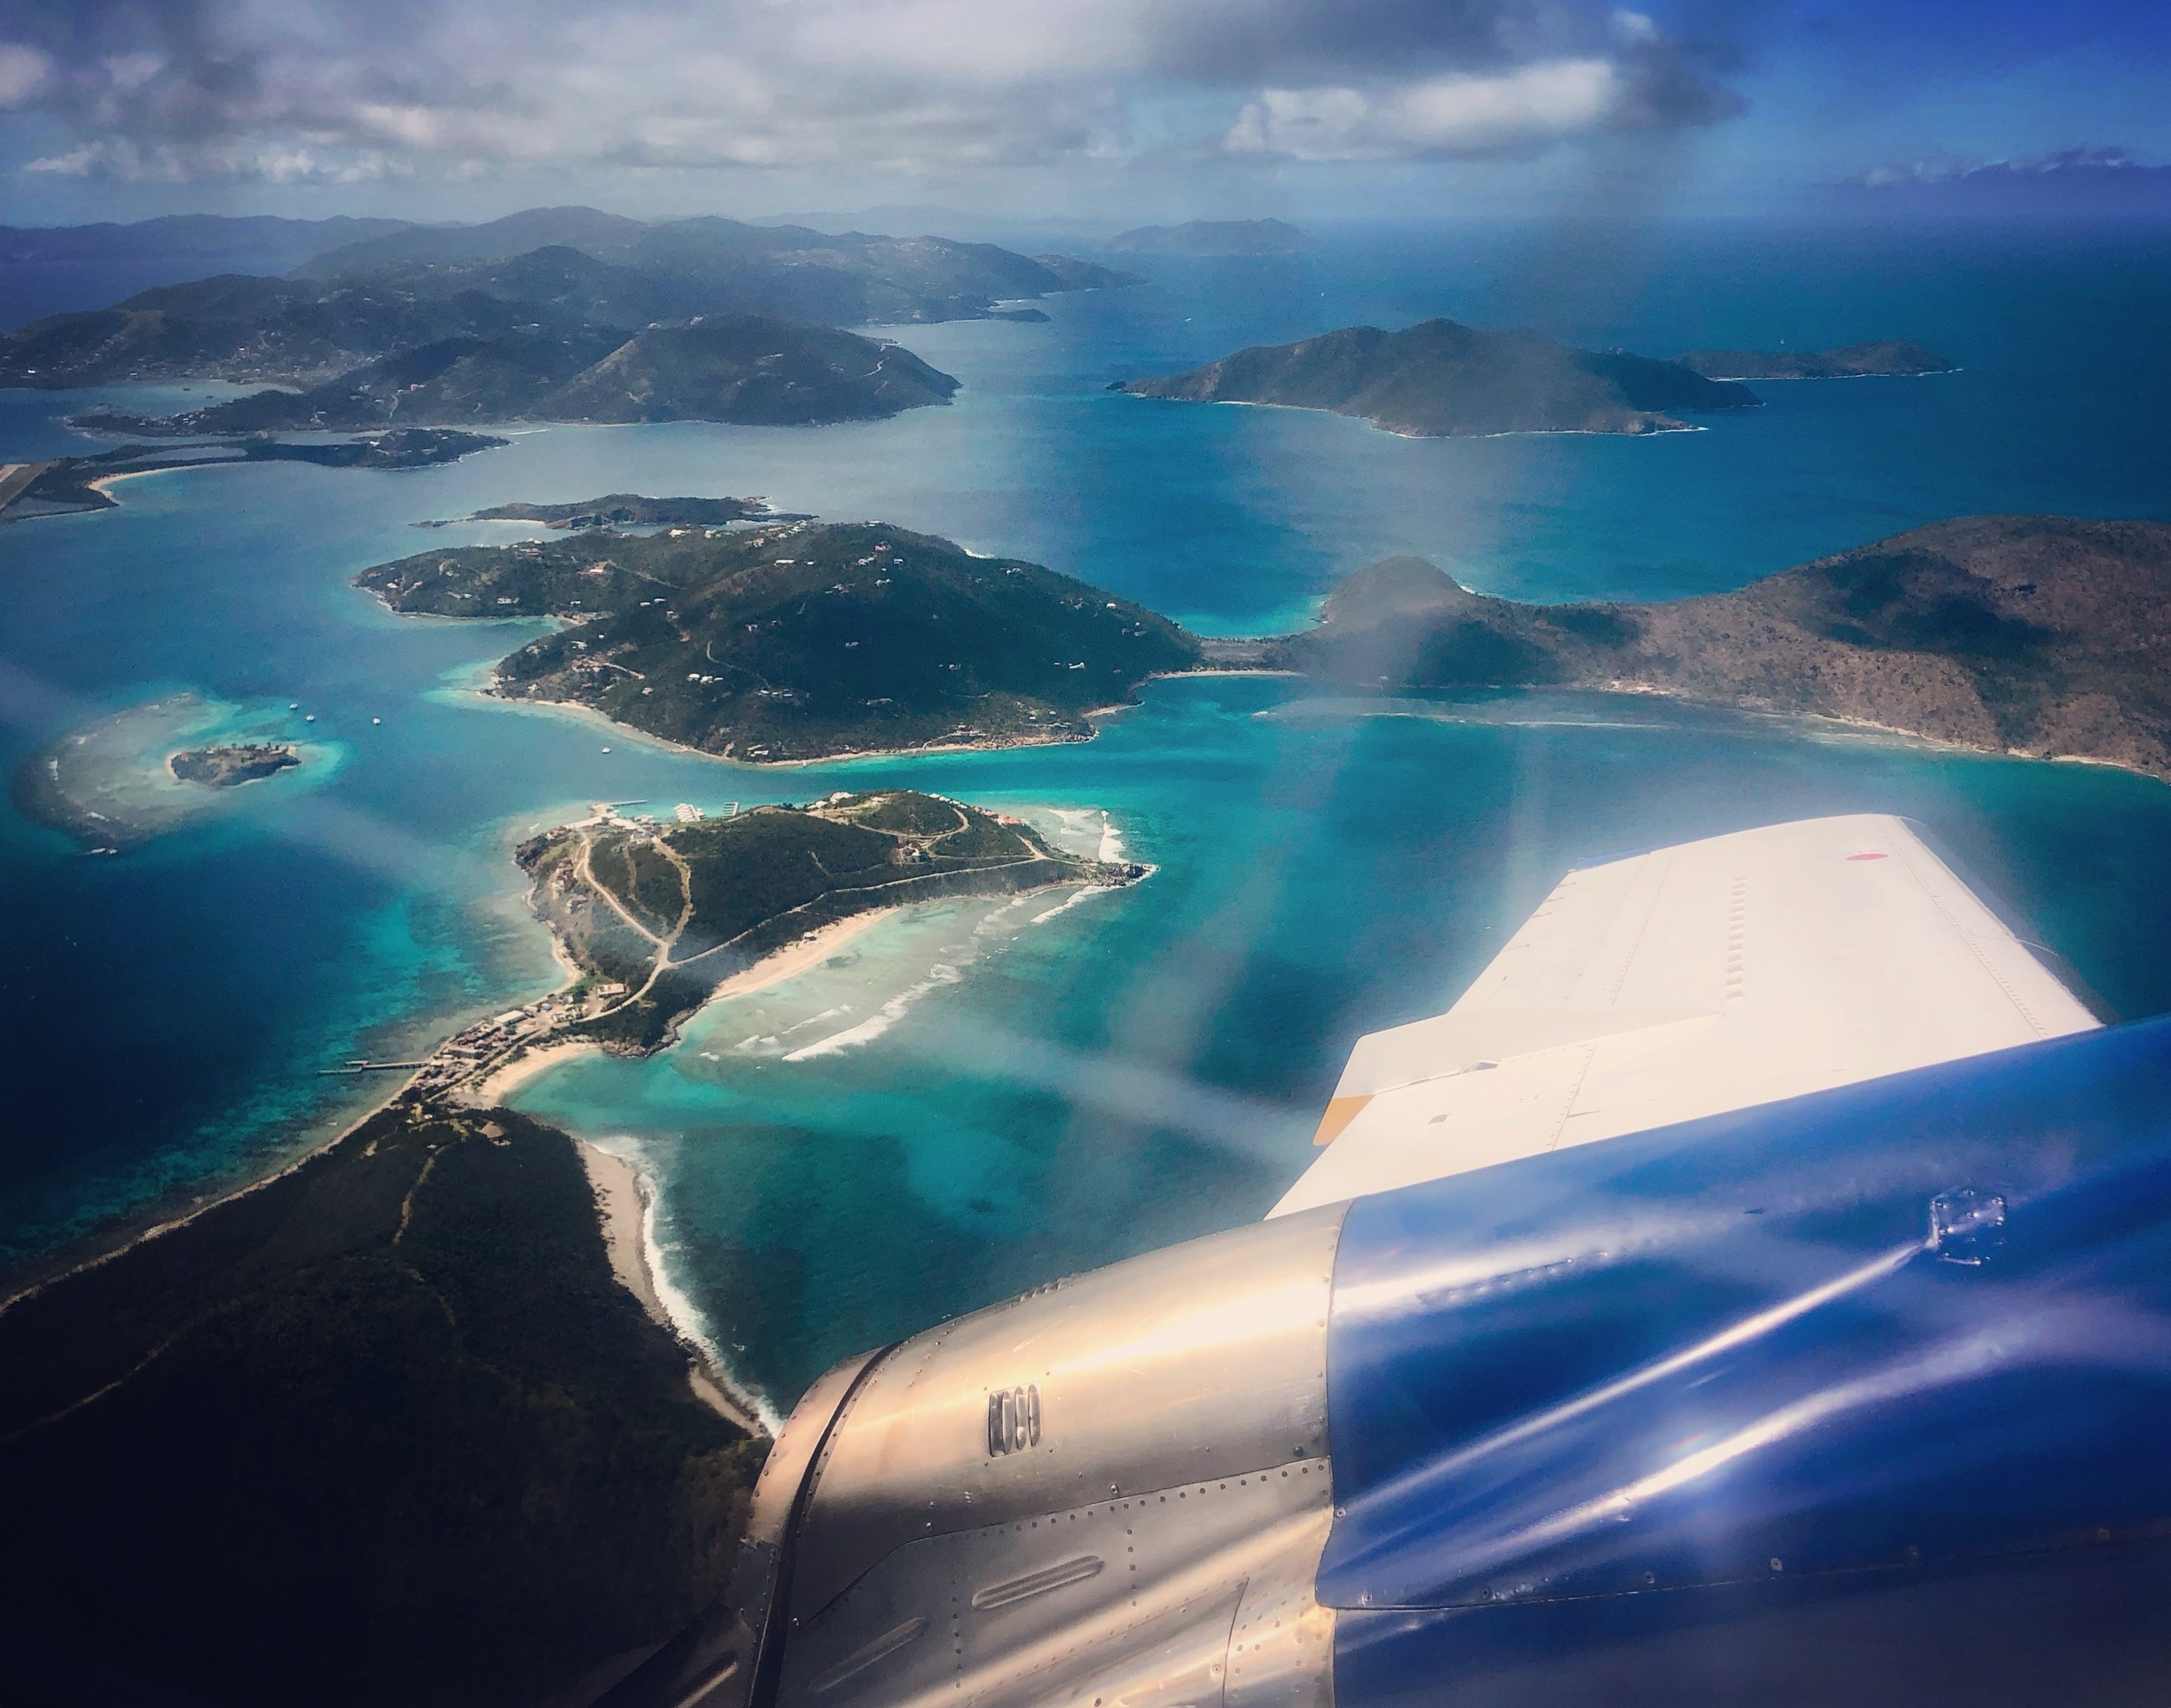 Flying over the BVI